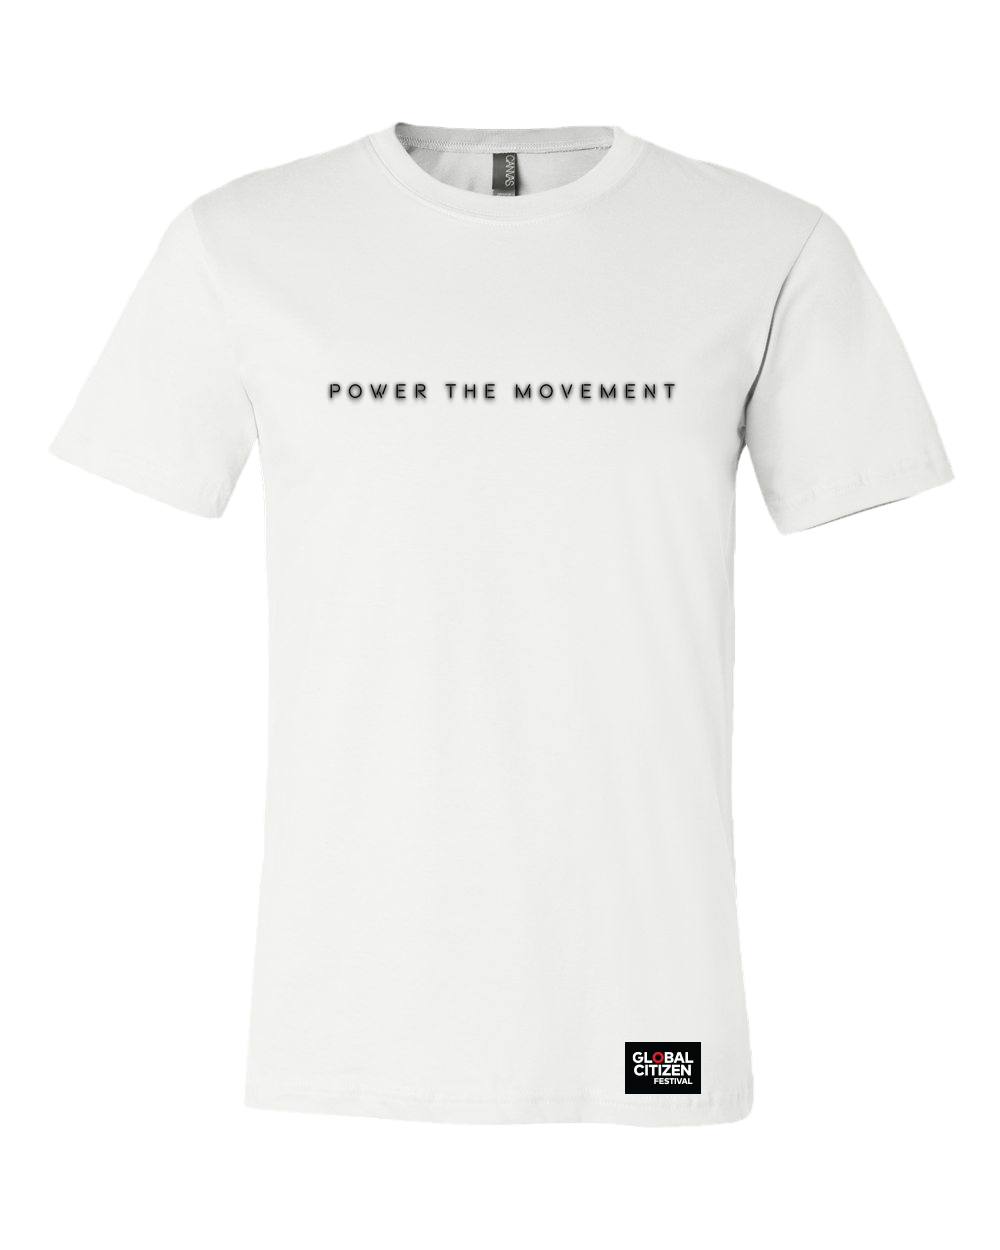 Power the Movement Short Sleeve Tee